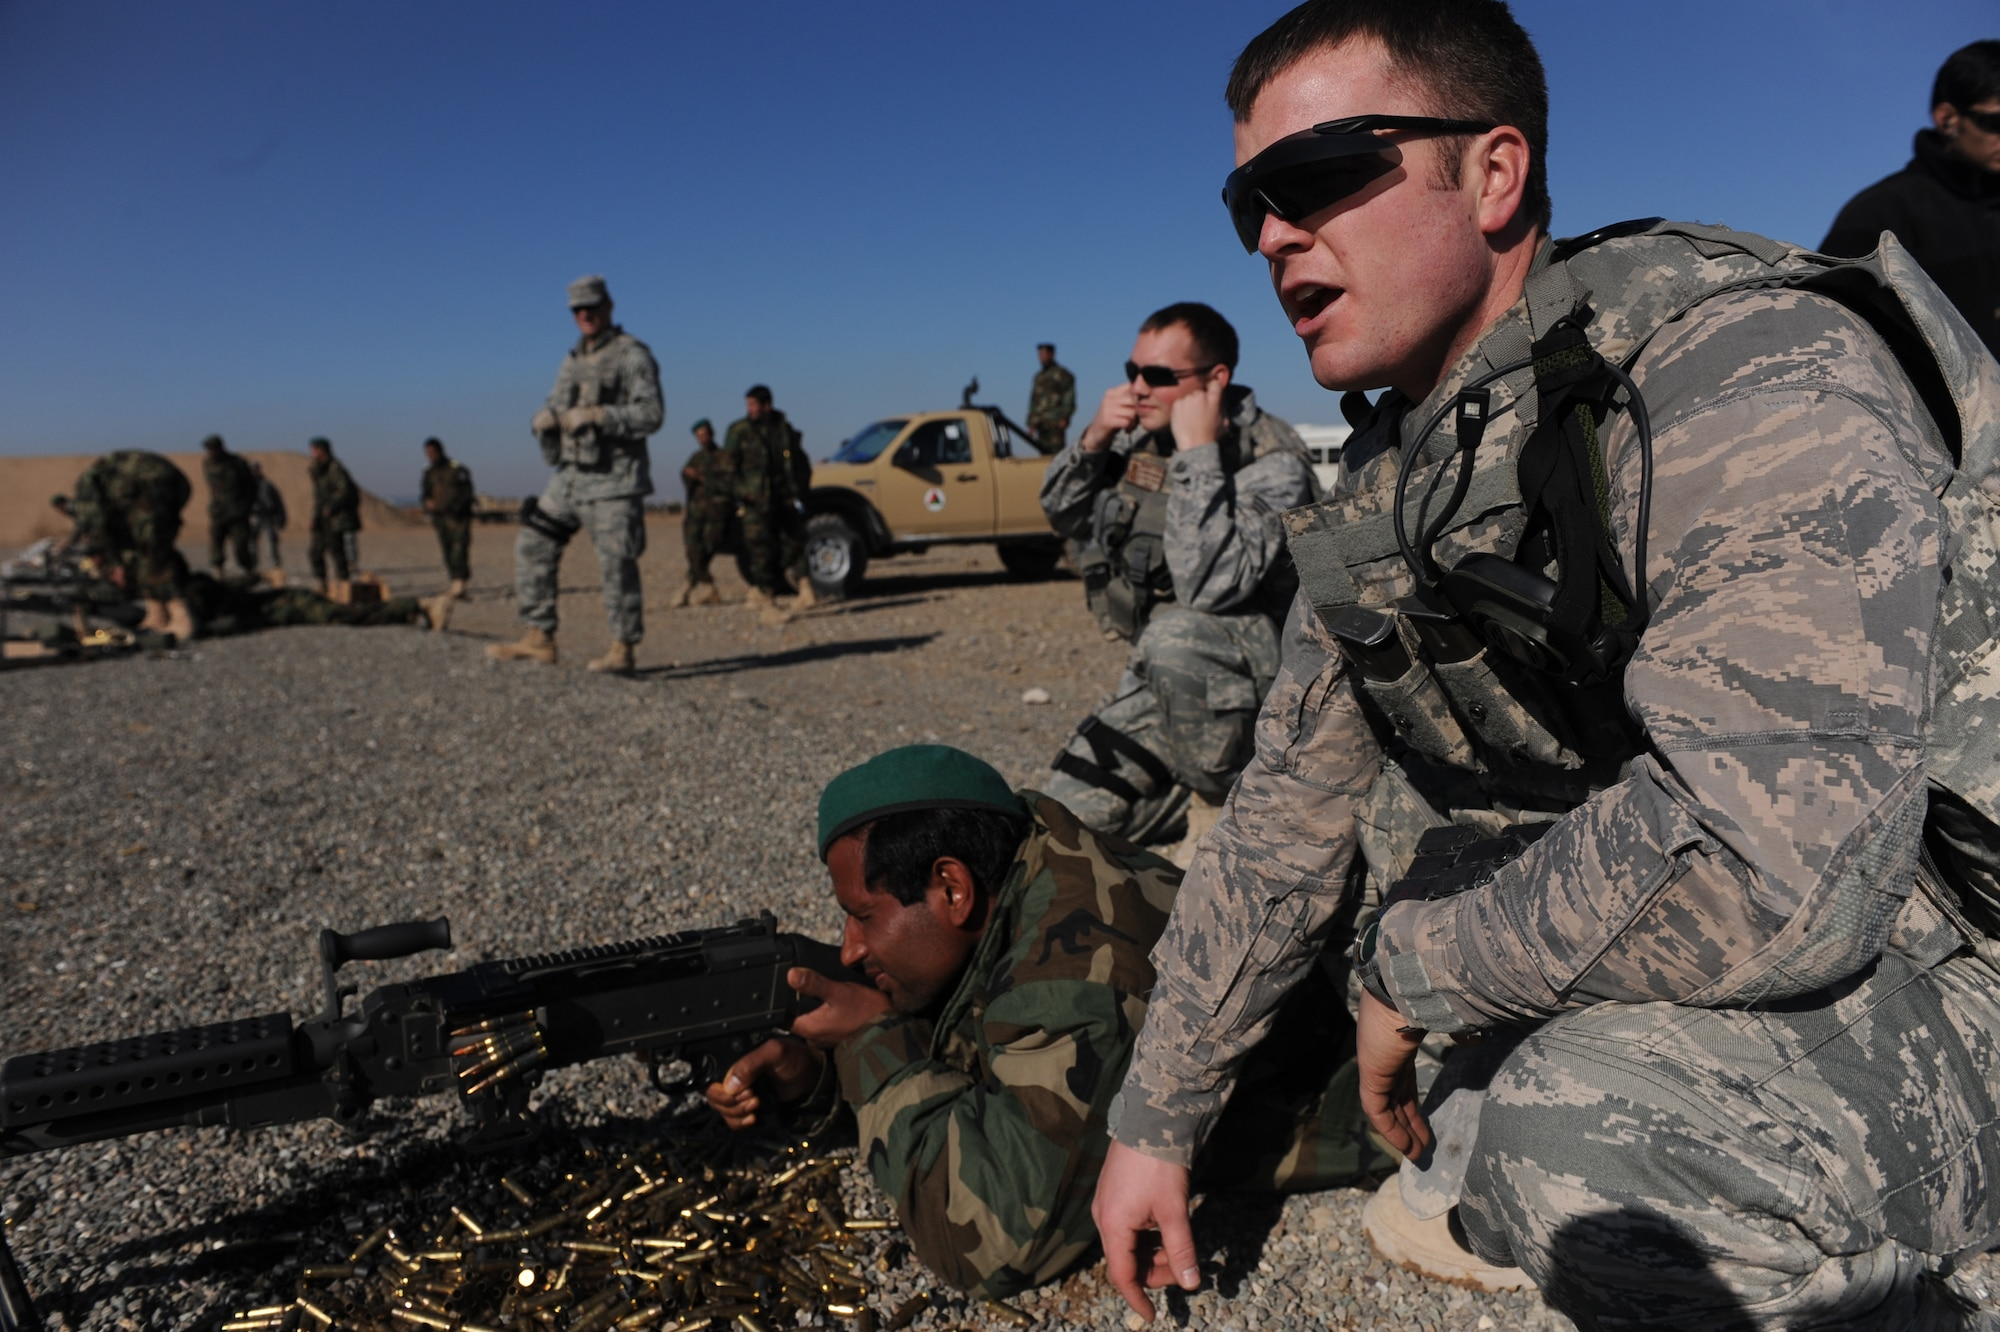 Tech. Sgt. Joshua Ray, 738th Air Expeditionary Advisory Group Security Forces advisor, gives an Afghanistan National Army Air Corps soldier feedback during M-240B machine gun familiarization training in Kandahar, Afghanistan, Jan. 4, 2010. Sergeant Conley is deployed from Fairchild Air Force Base, Wash., in support of Operation Enduring Freedom. (U.S. Air Force photo/Staff Sgt. Manuel J. Martinez) (Released)